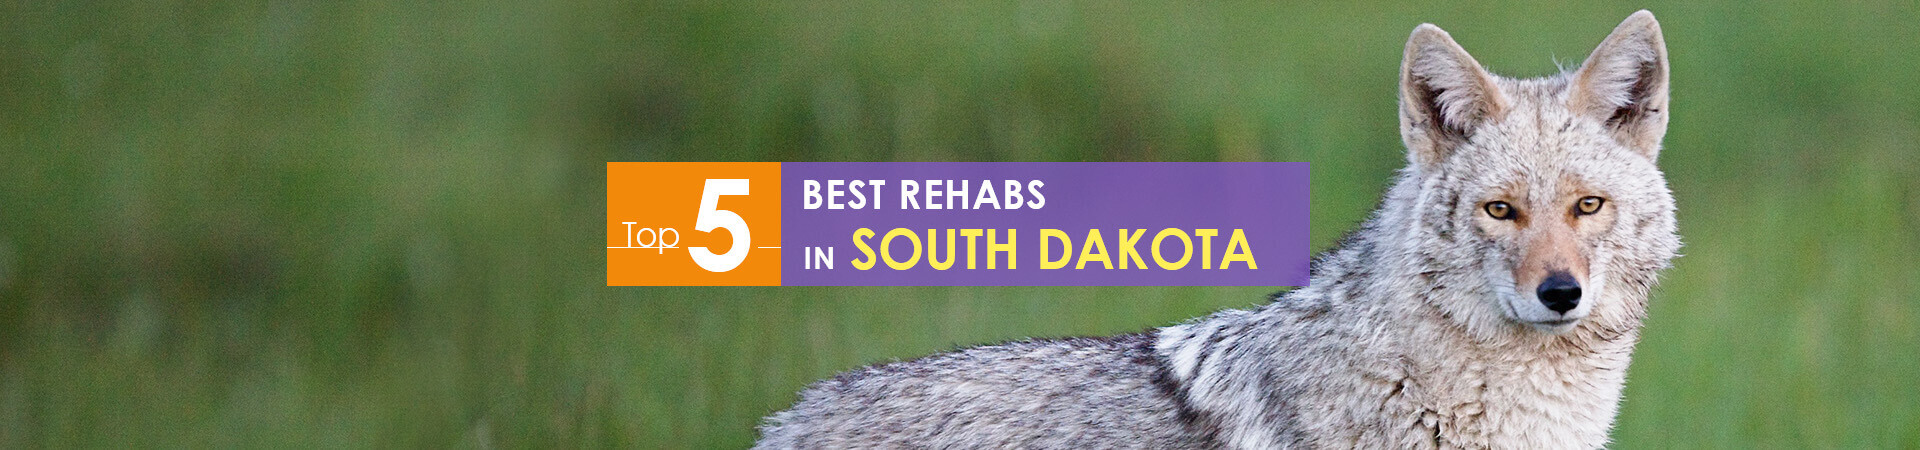 Best Rehabs in South Dakota